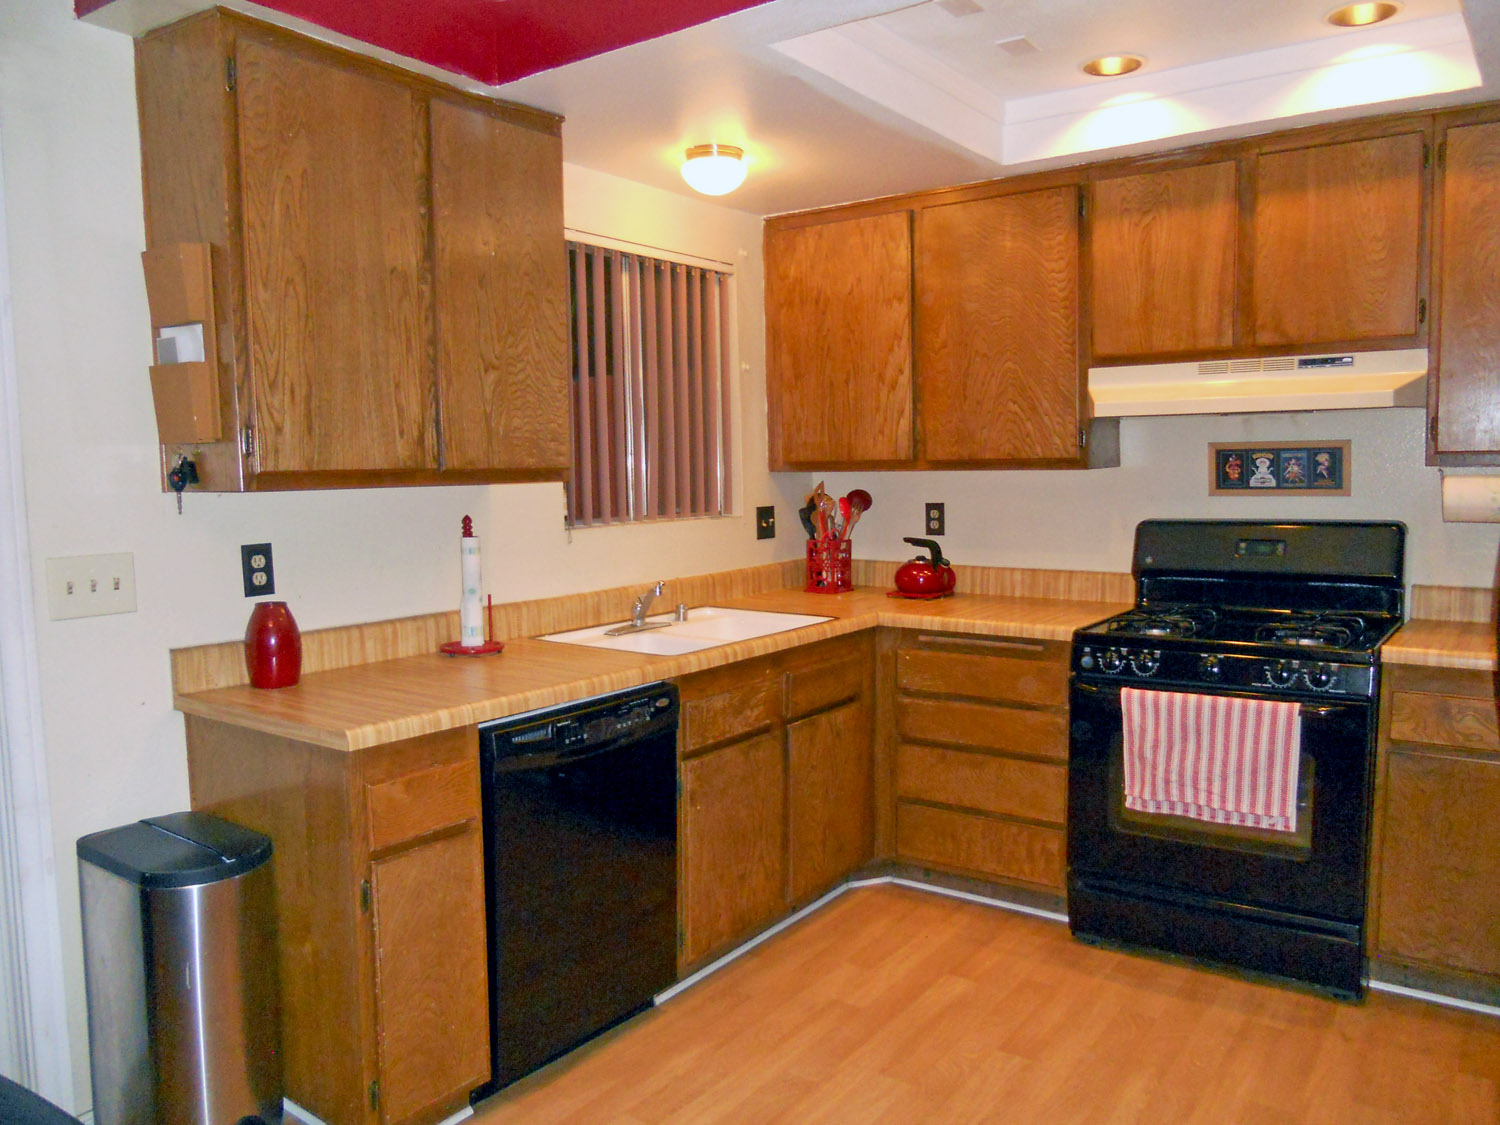 Spacious kitchen with ample cabinetry, dishwasher and gas stove.